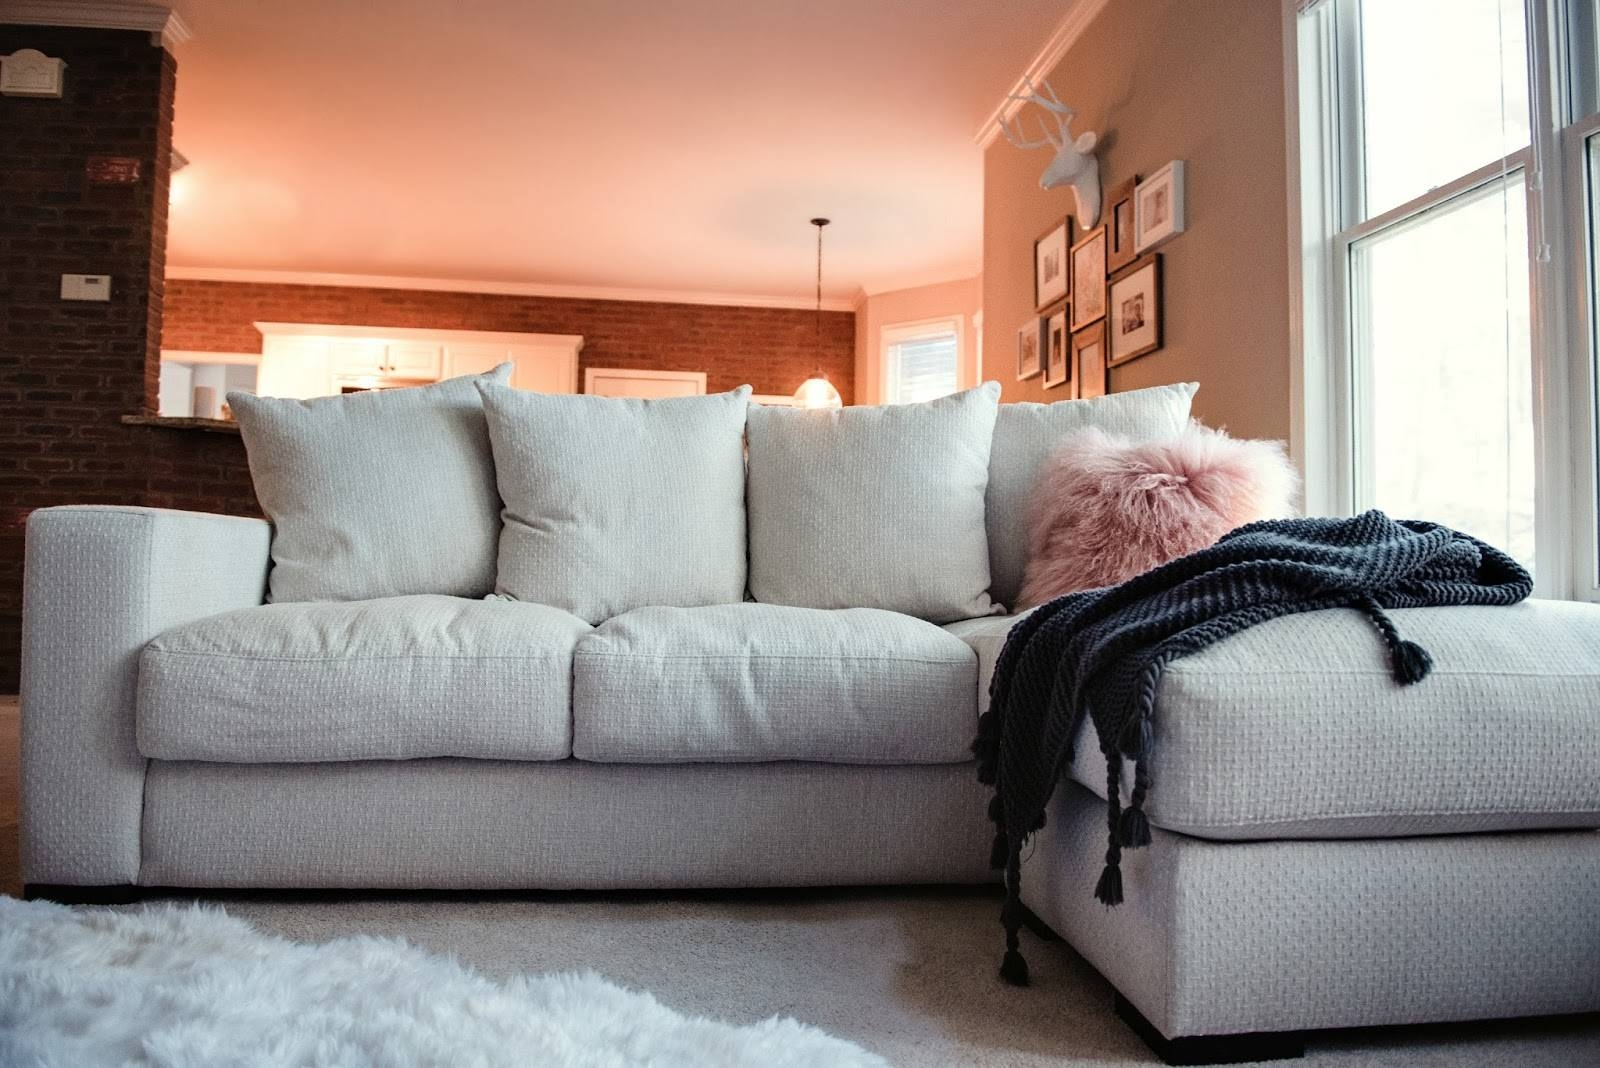 Cozy Family Room Style With Jonathan Louis Furniture - Garvinandco intended for Jonathan Sofa (Image 6 of 25)